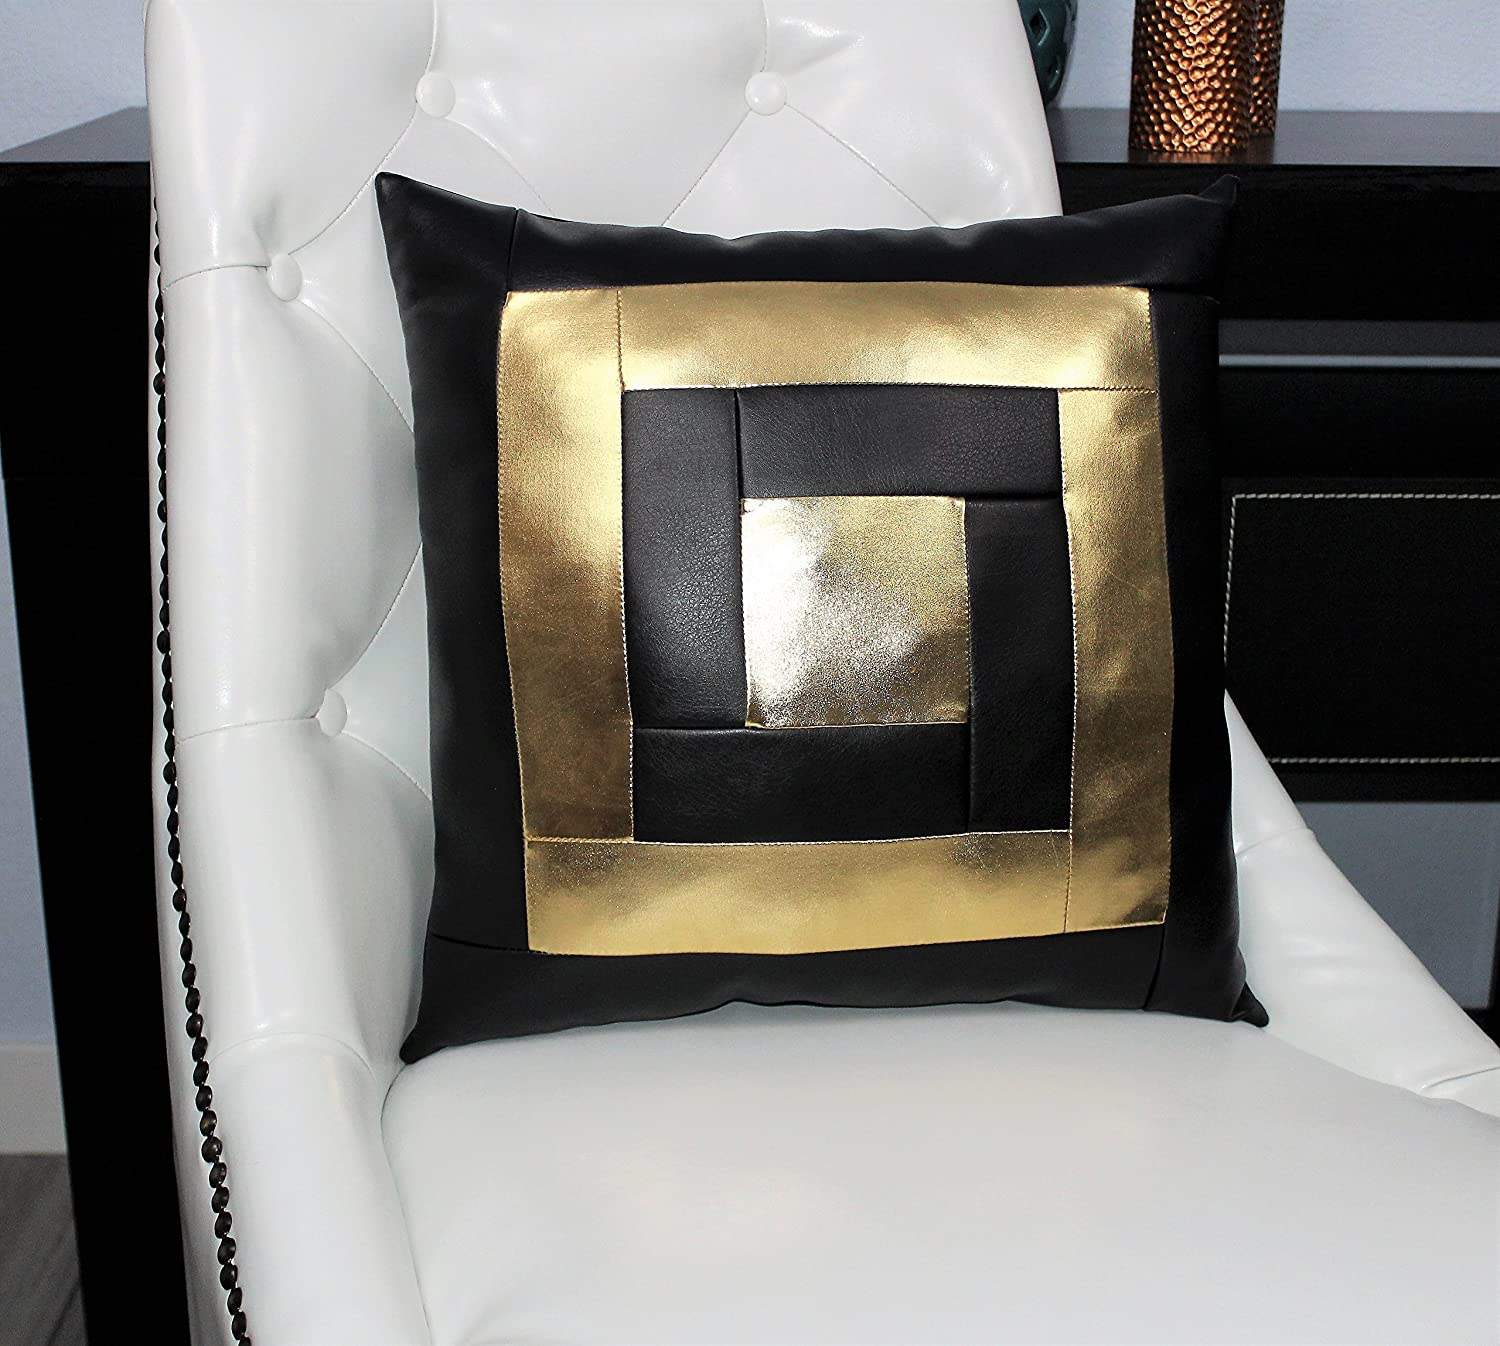 Amazon.com: Black and Gold accent decorative faux leather throw